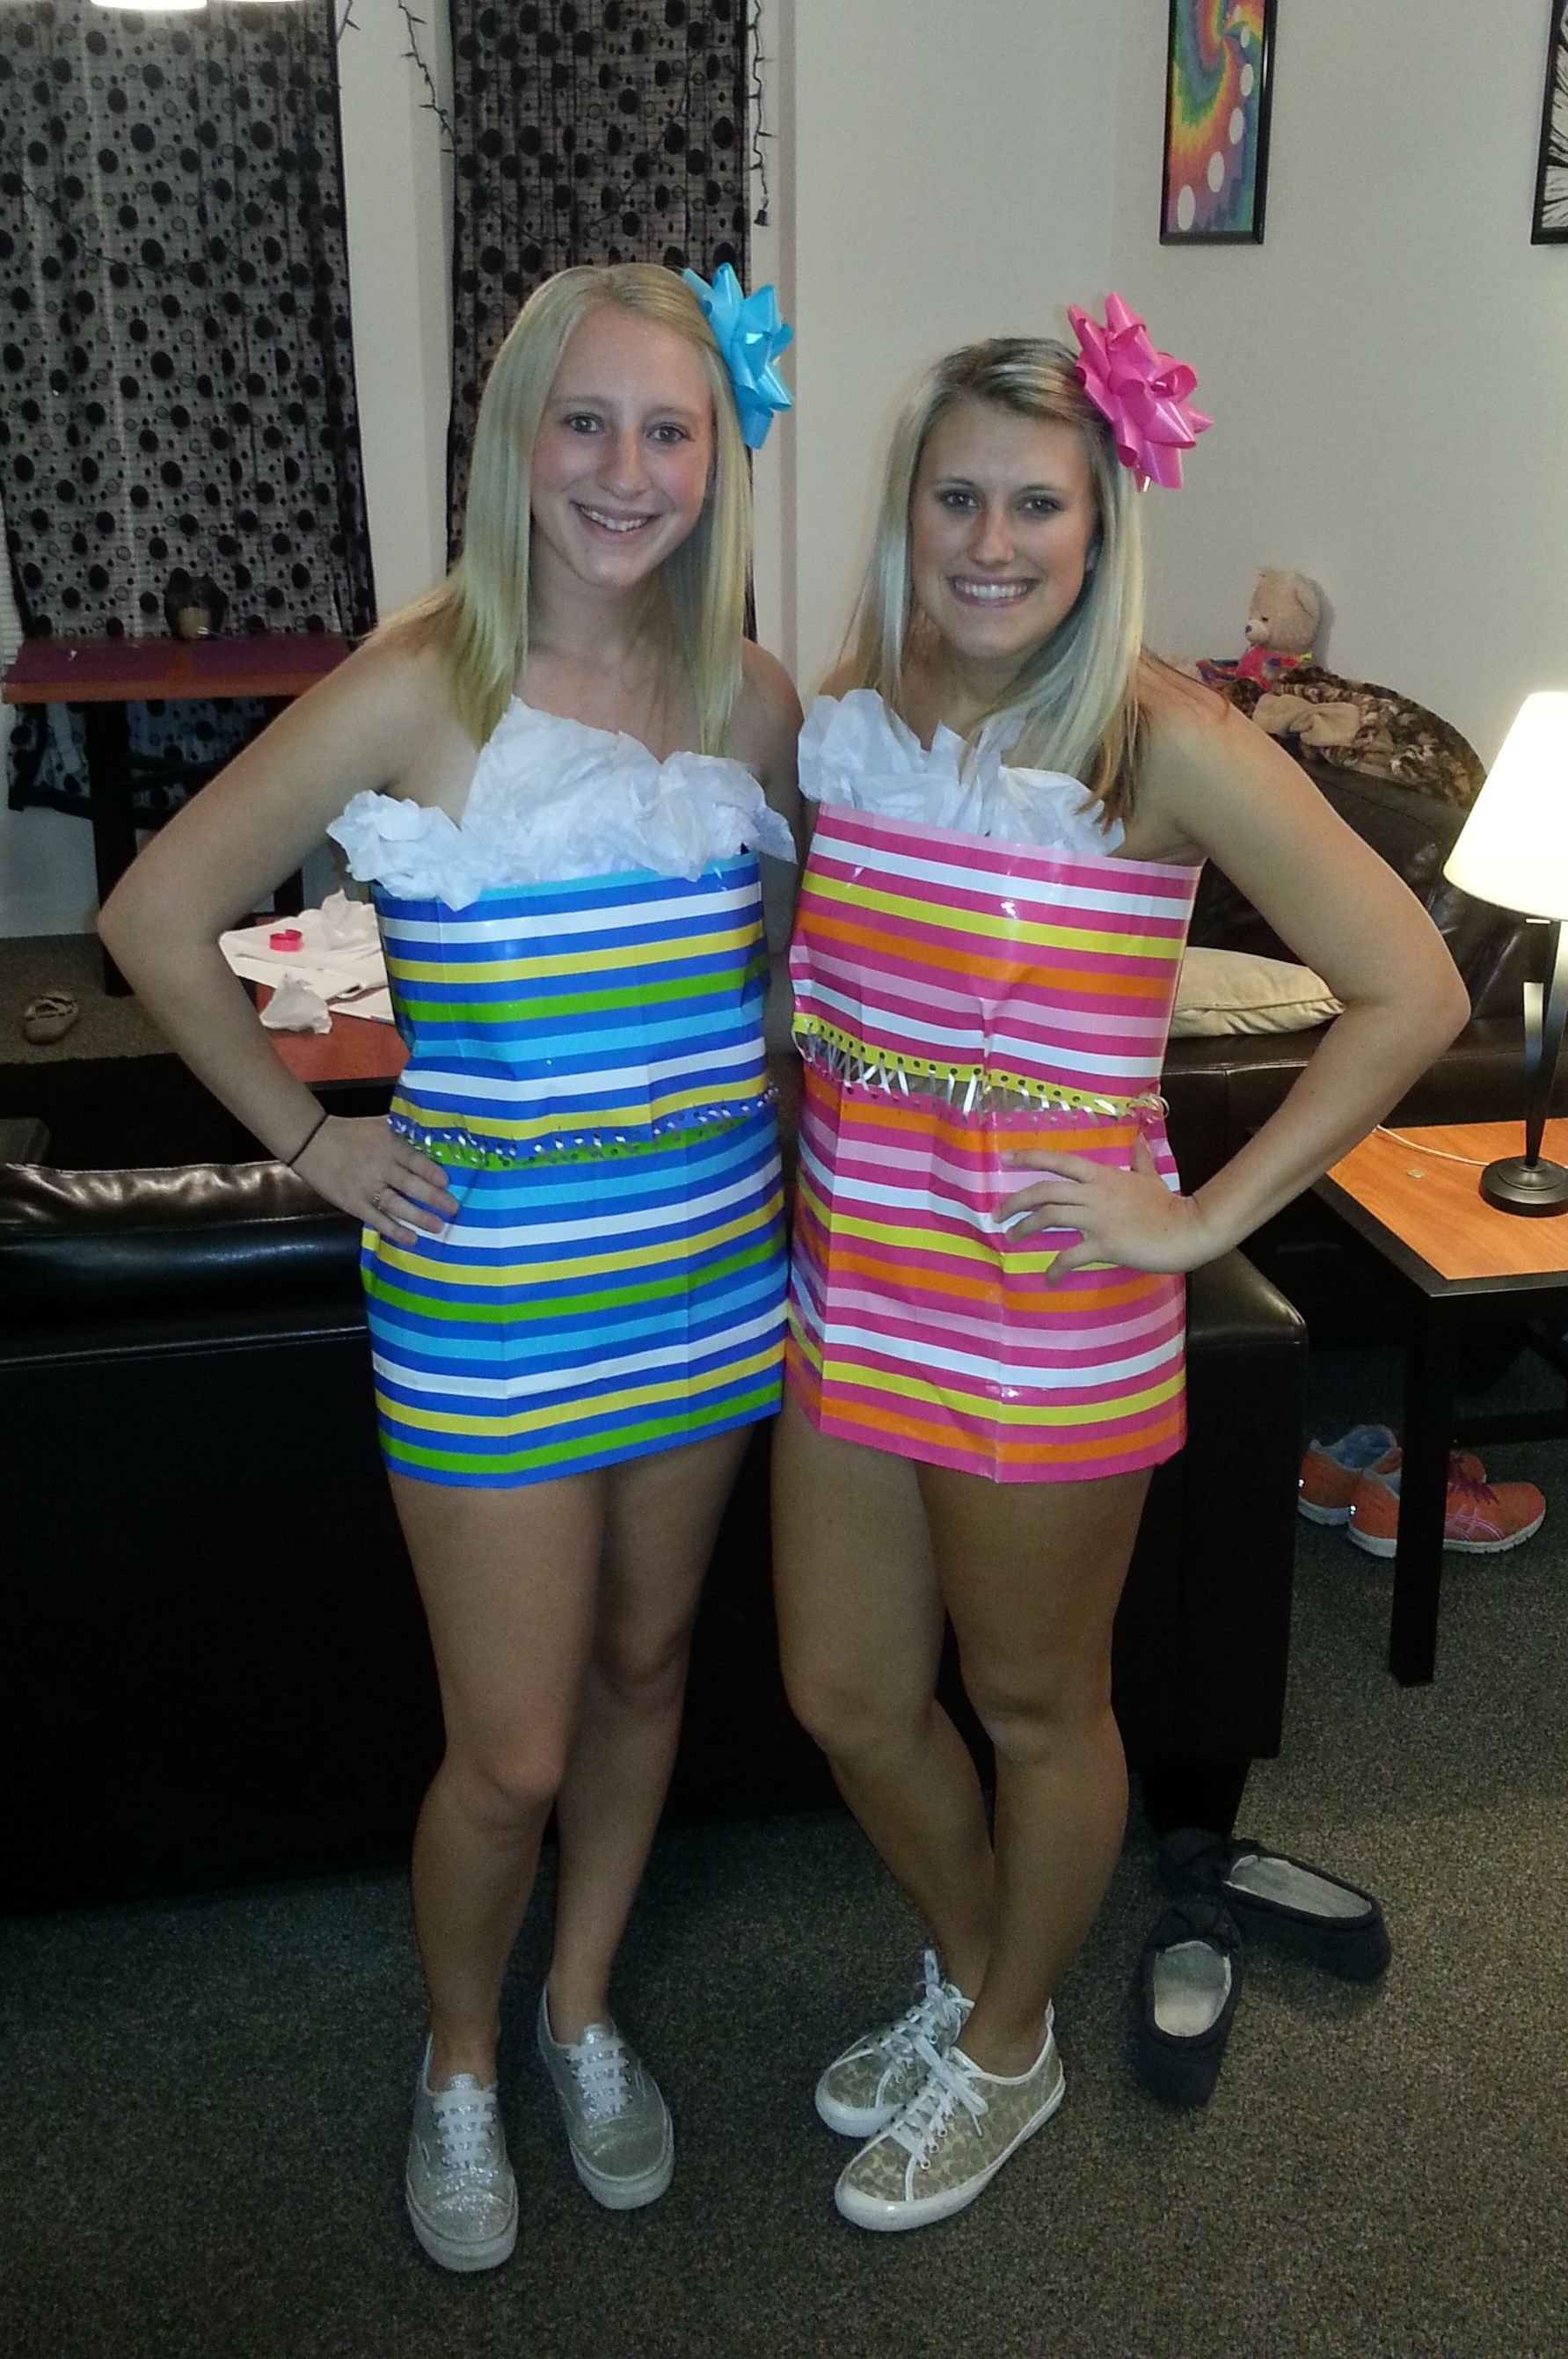 10 Unique Anything But Clothes Party Costume Ideas definitely classier but great idea for an abc party favorite 1